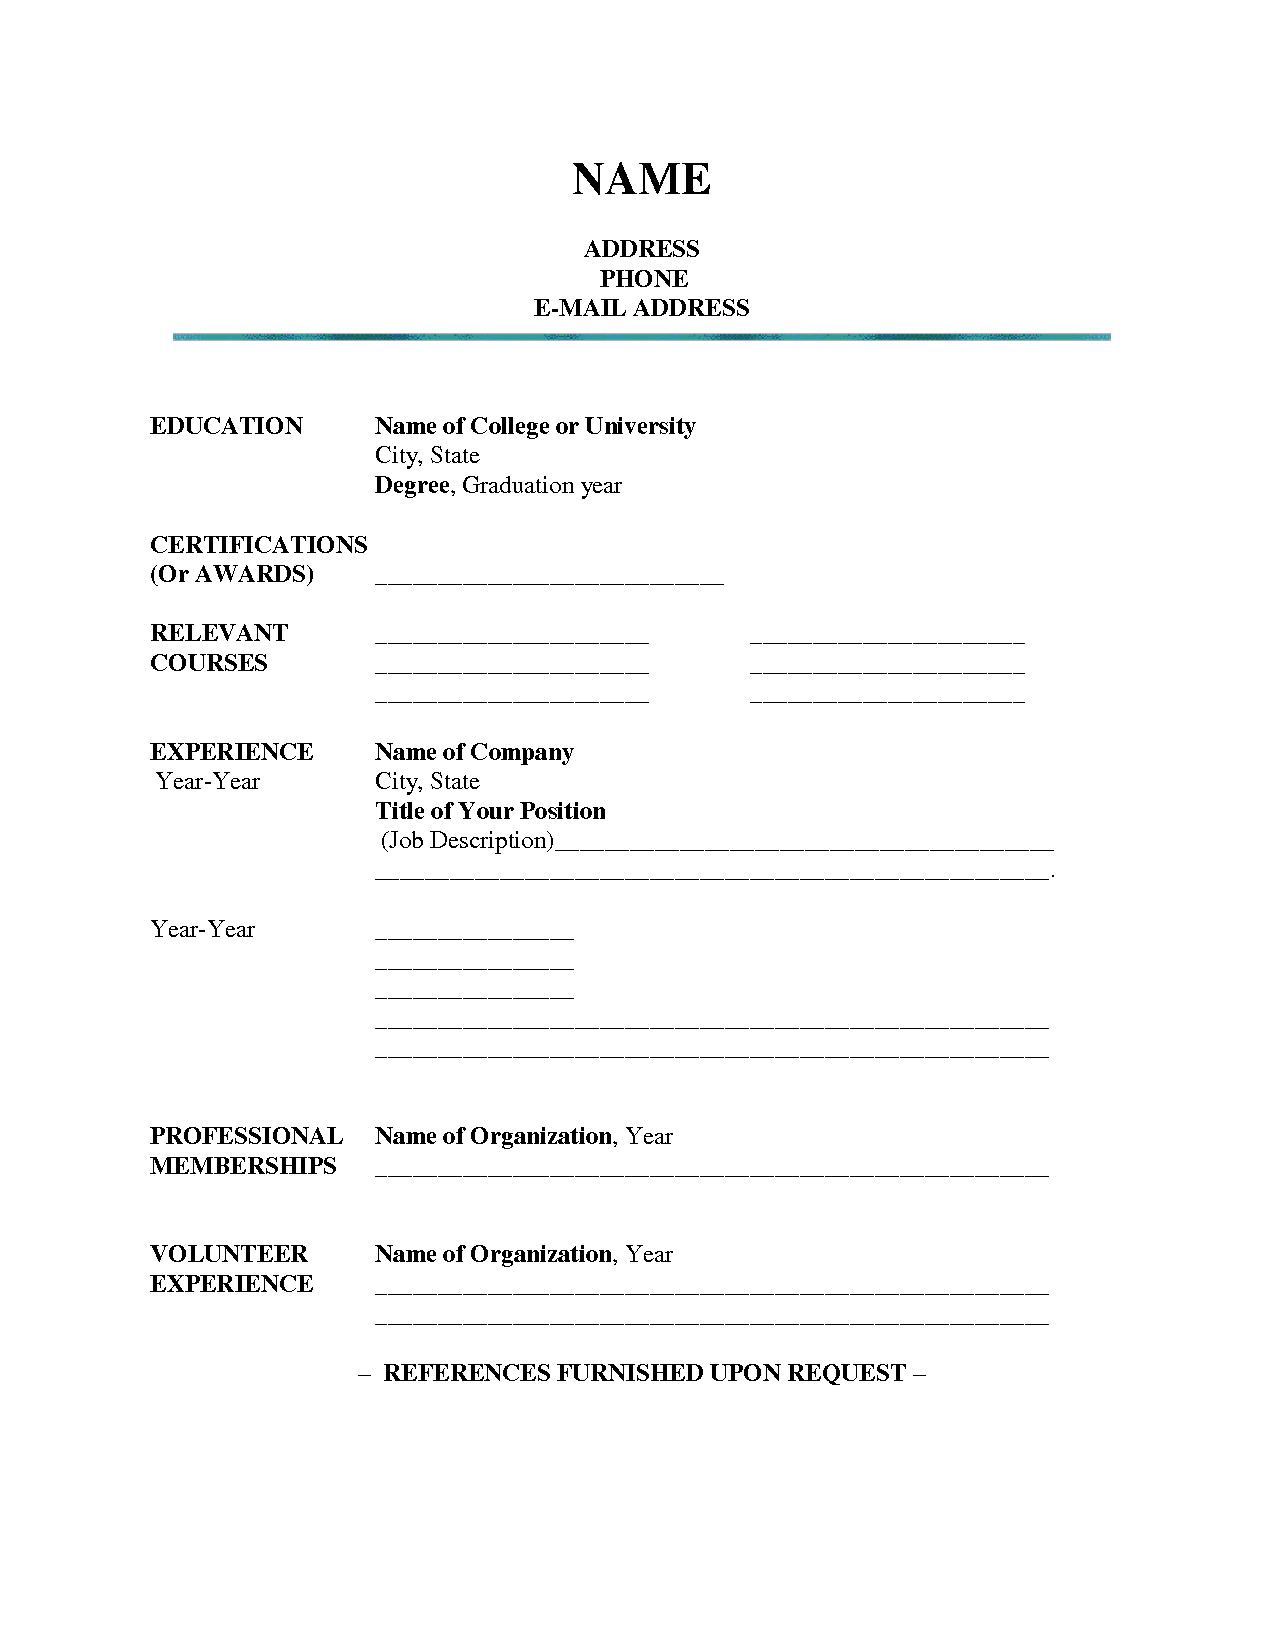 Blank Resume Templates For Students Resume BuilderResume Templates Cover Letter Examples  Cover